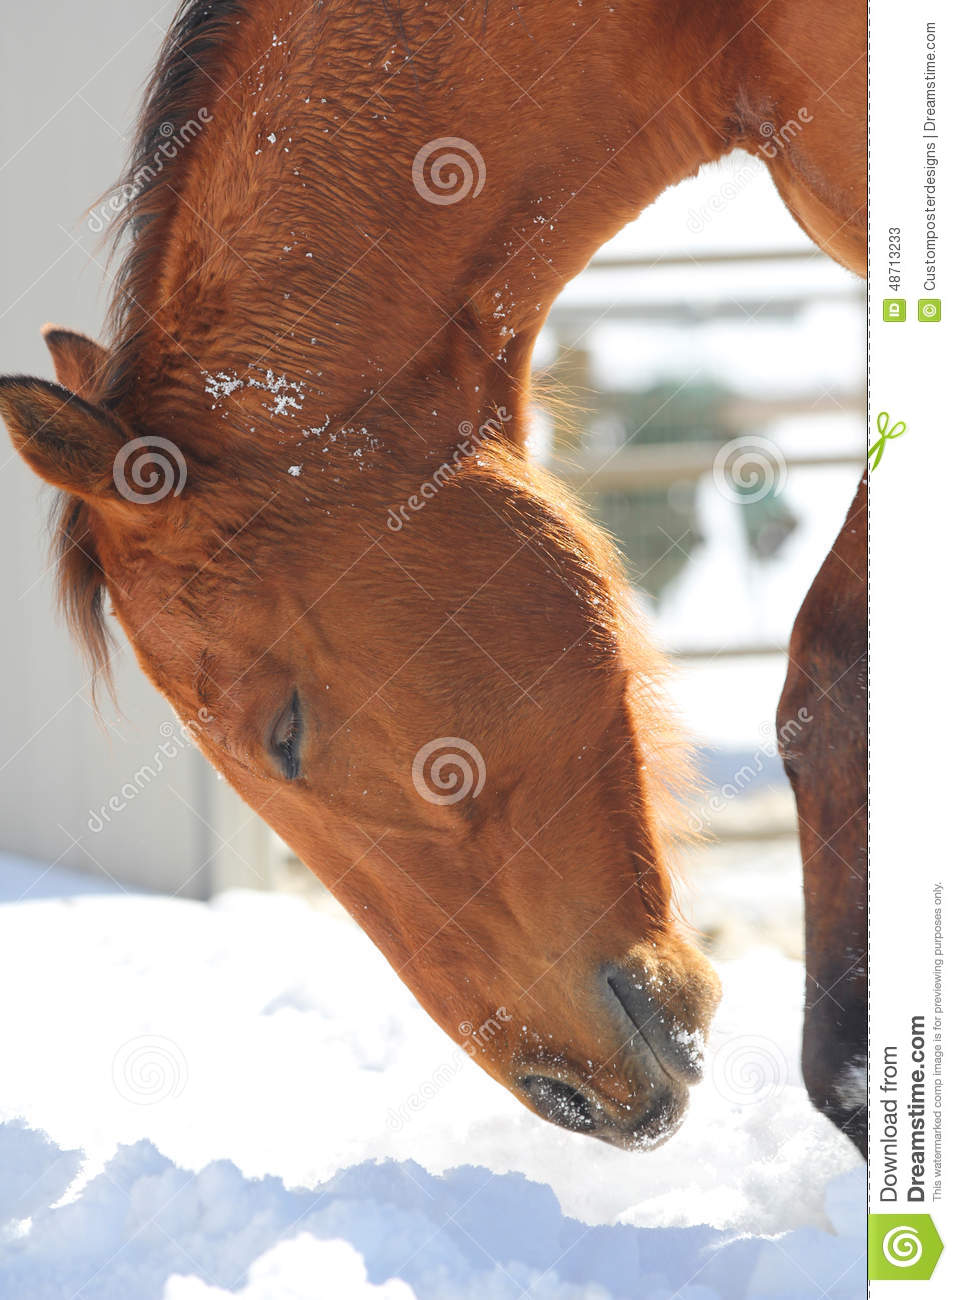 Download A Profile Of A Horse With His Eyes Closed In The Snow. Stock Image - Image of simple, view: 48713233